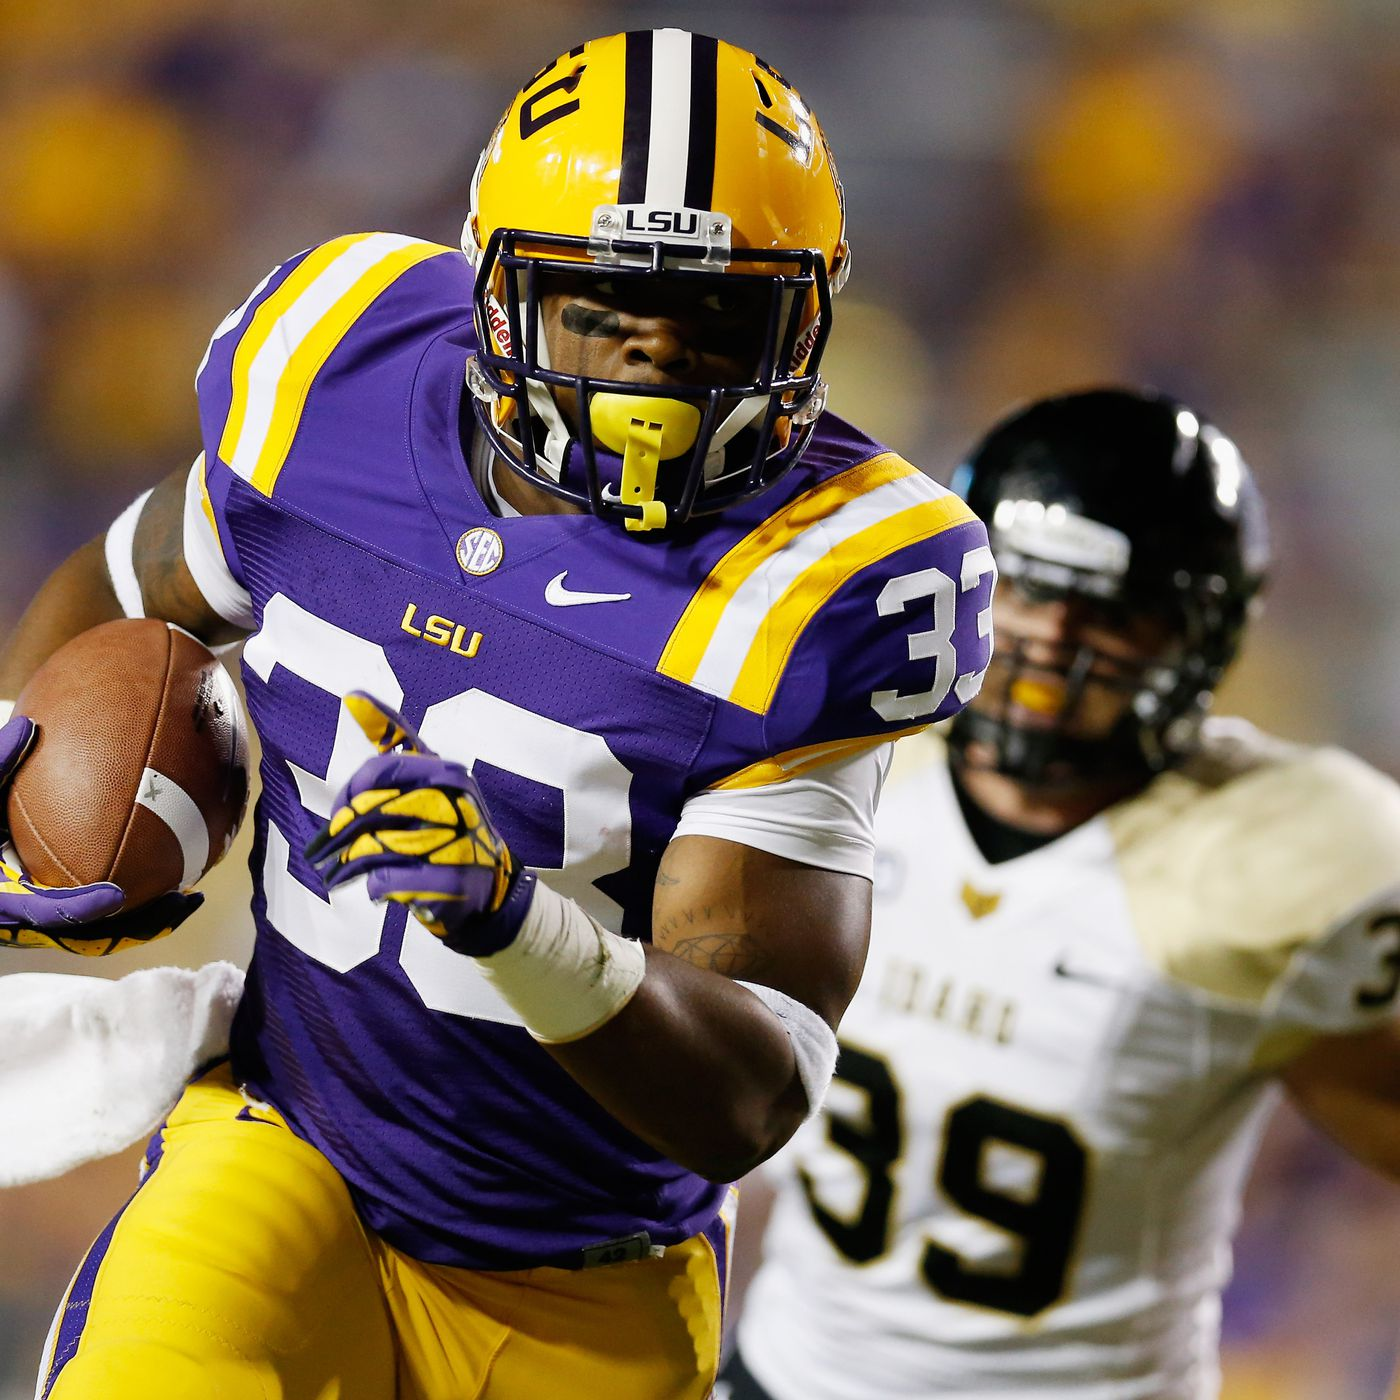 LSU Football 2014 NFL Draft Profiles: Jeremy Hill - And The Valley ...